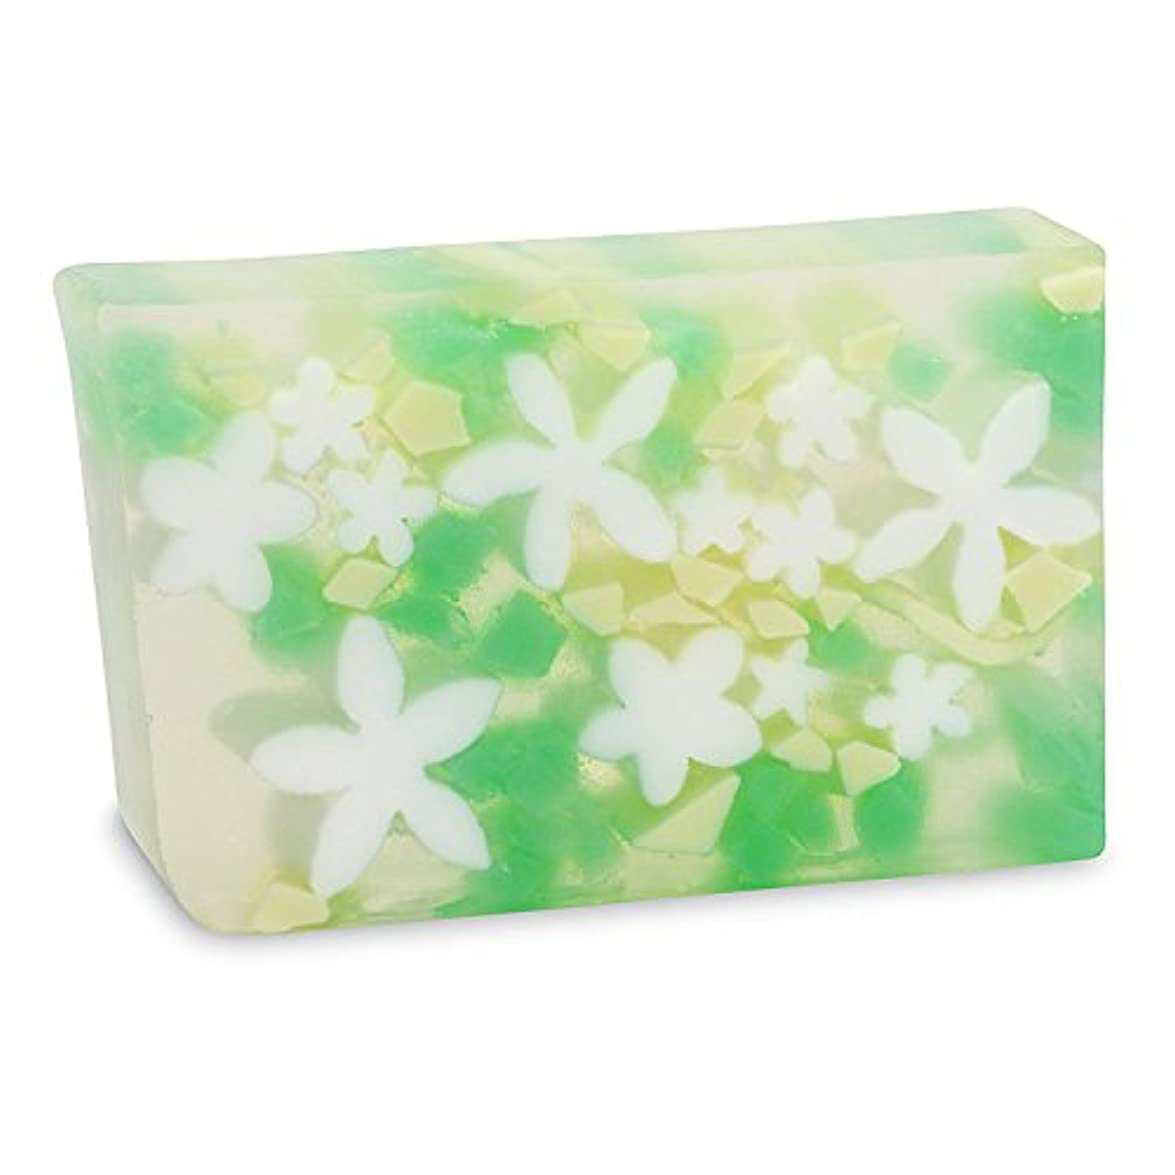 目覚める浸透する作詞家Primal Elements SWPLU Plumeria 5.8 oz. Bar Soap in Shrinkwrap